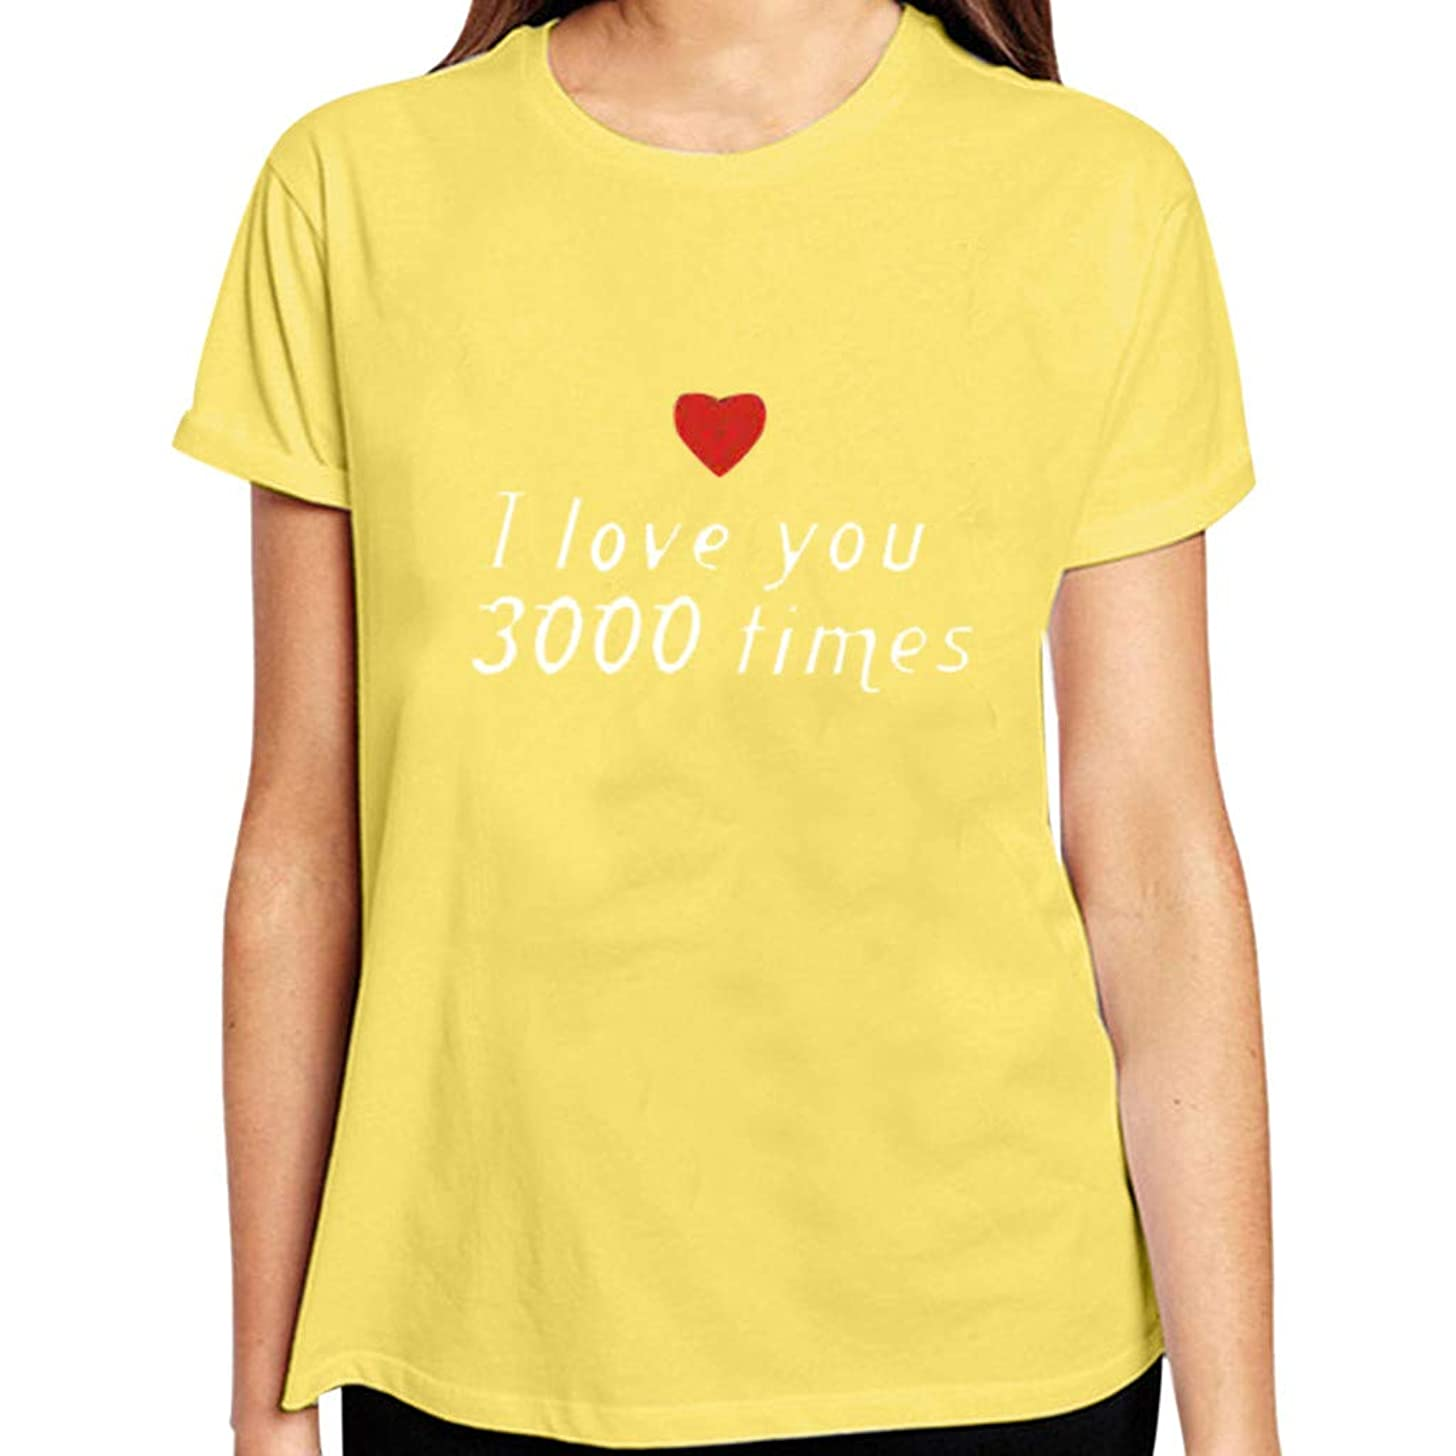 Fashion Couple T Shirt I Love You 3000 Women Men Tops Short Sleeve Love Heart Print Casual Blouse Top for Lovers Gift